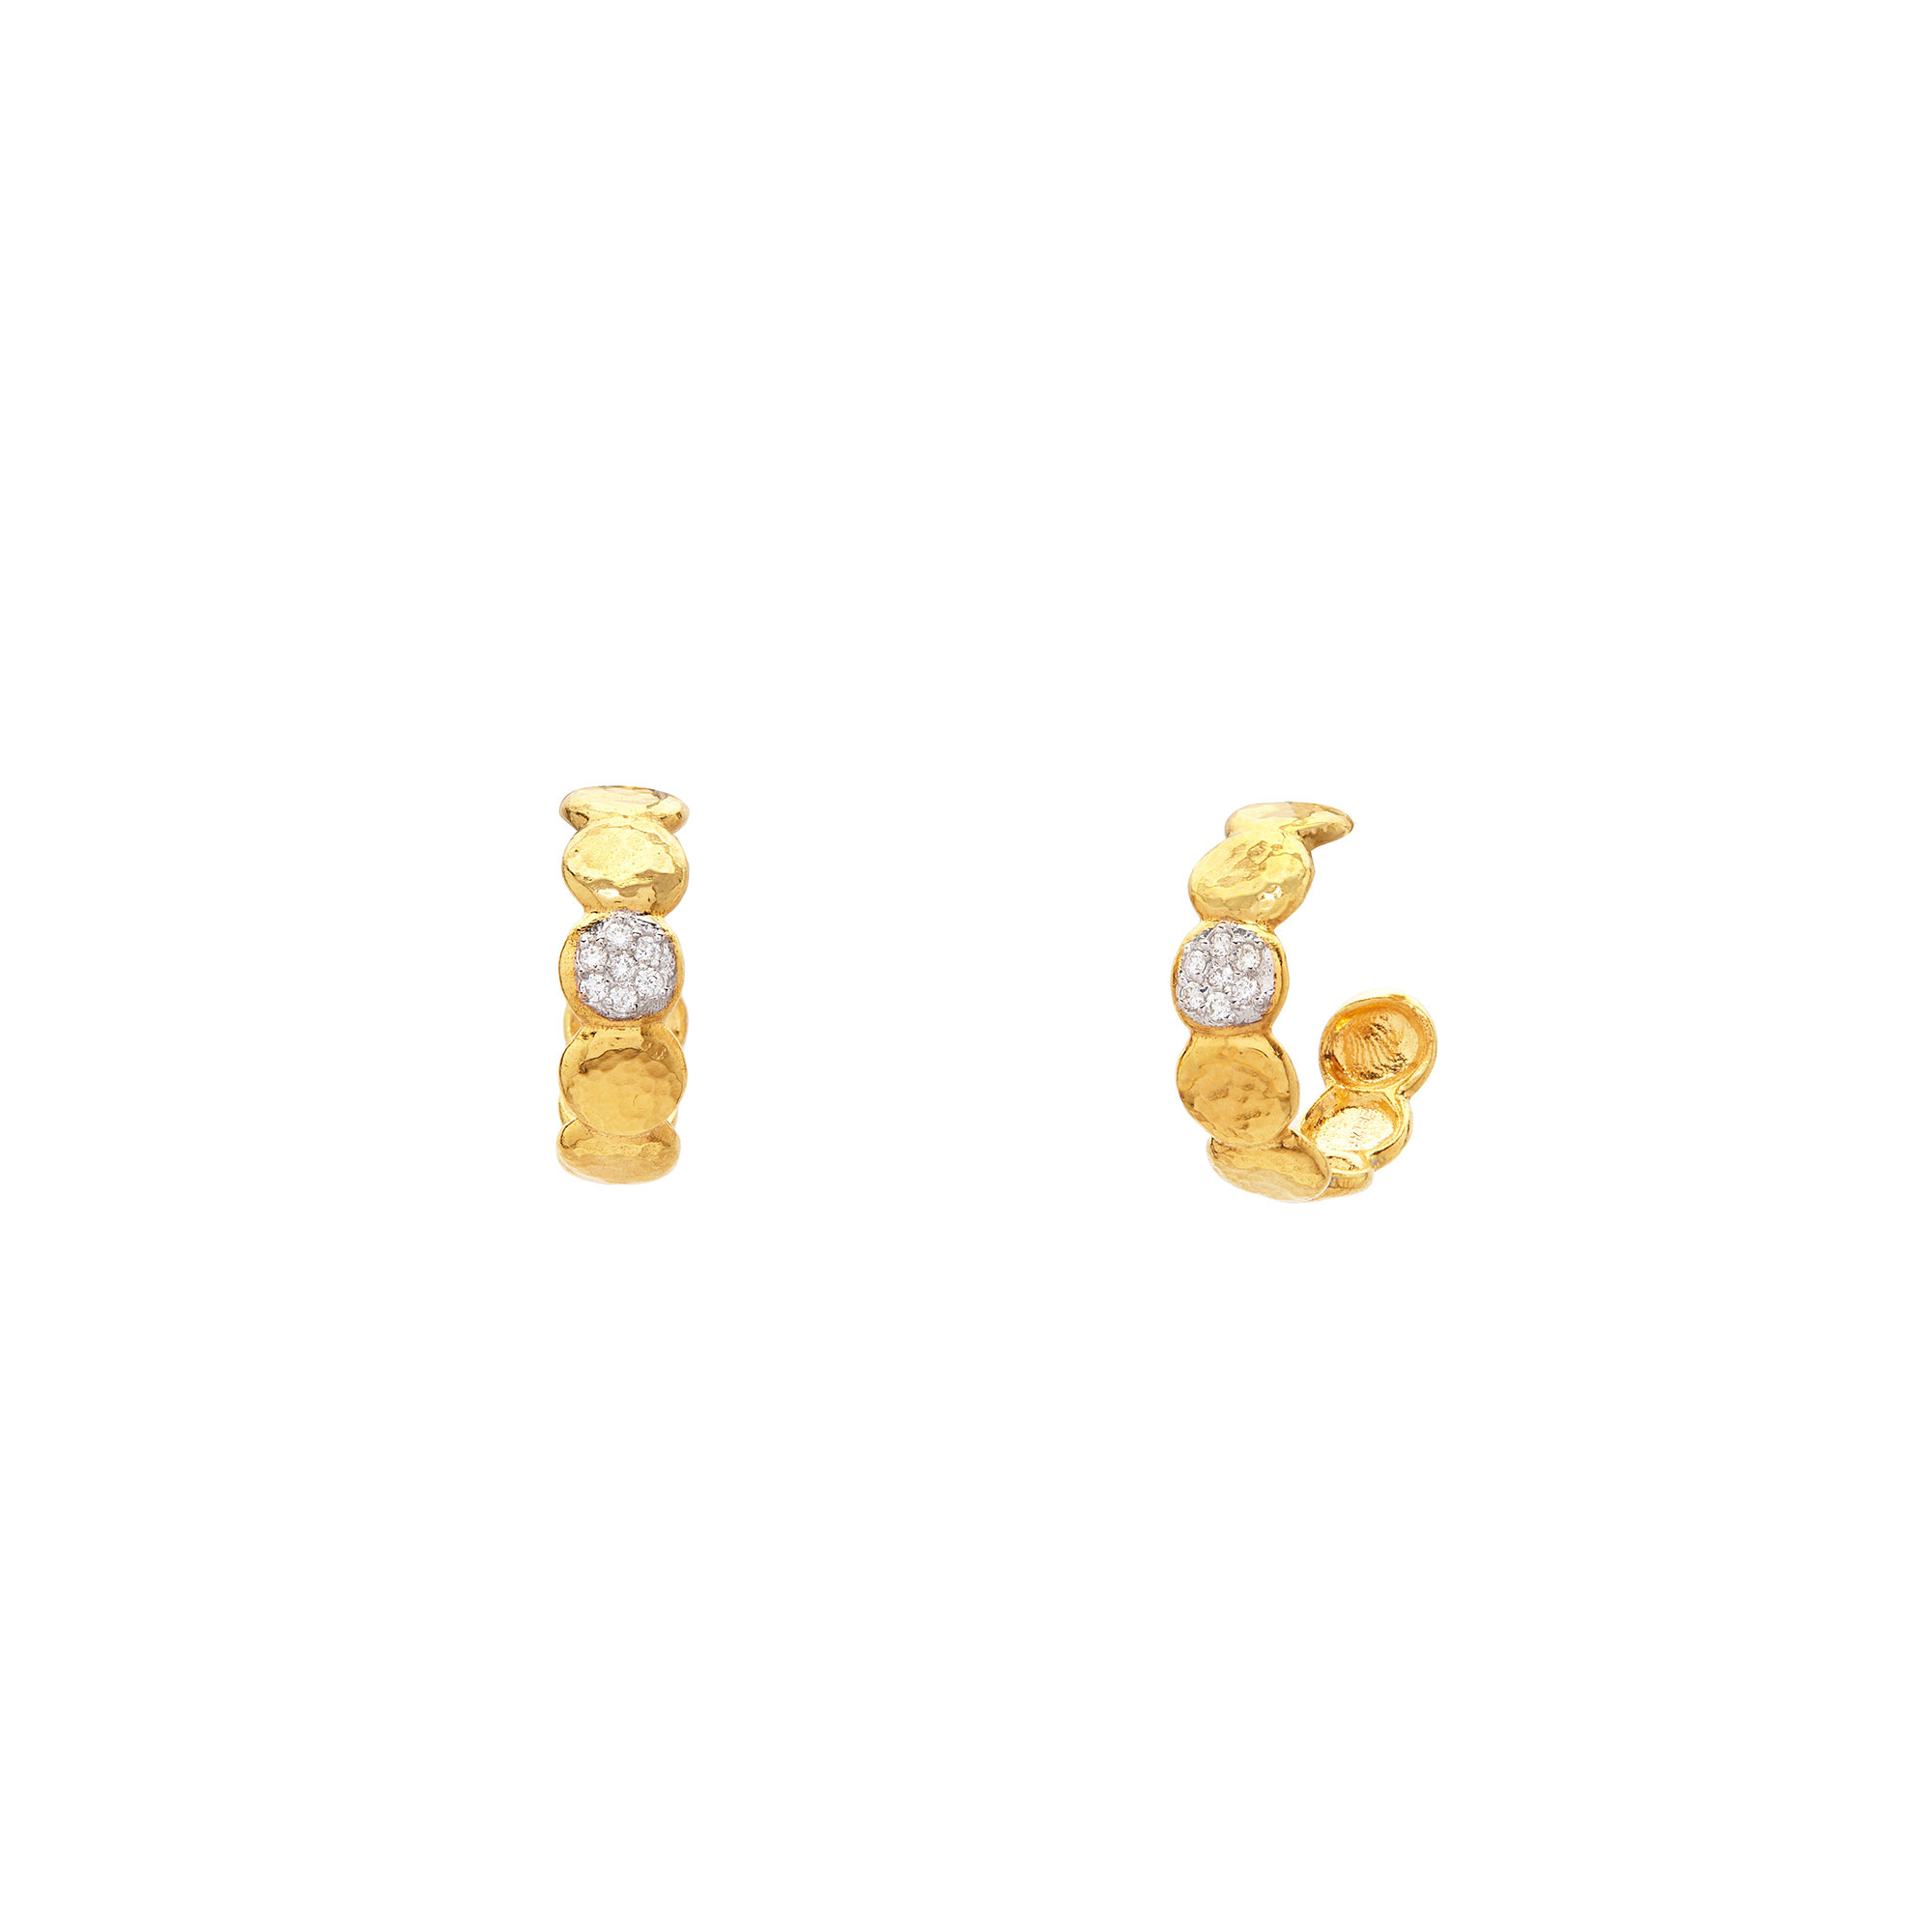 Gurhan 22K Yellow Gold 0.098cts  Diamond Gold Earrings with Stones E-PBL-HP-S-1DIP